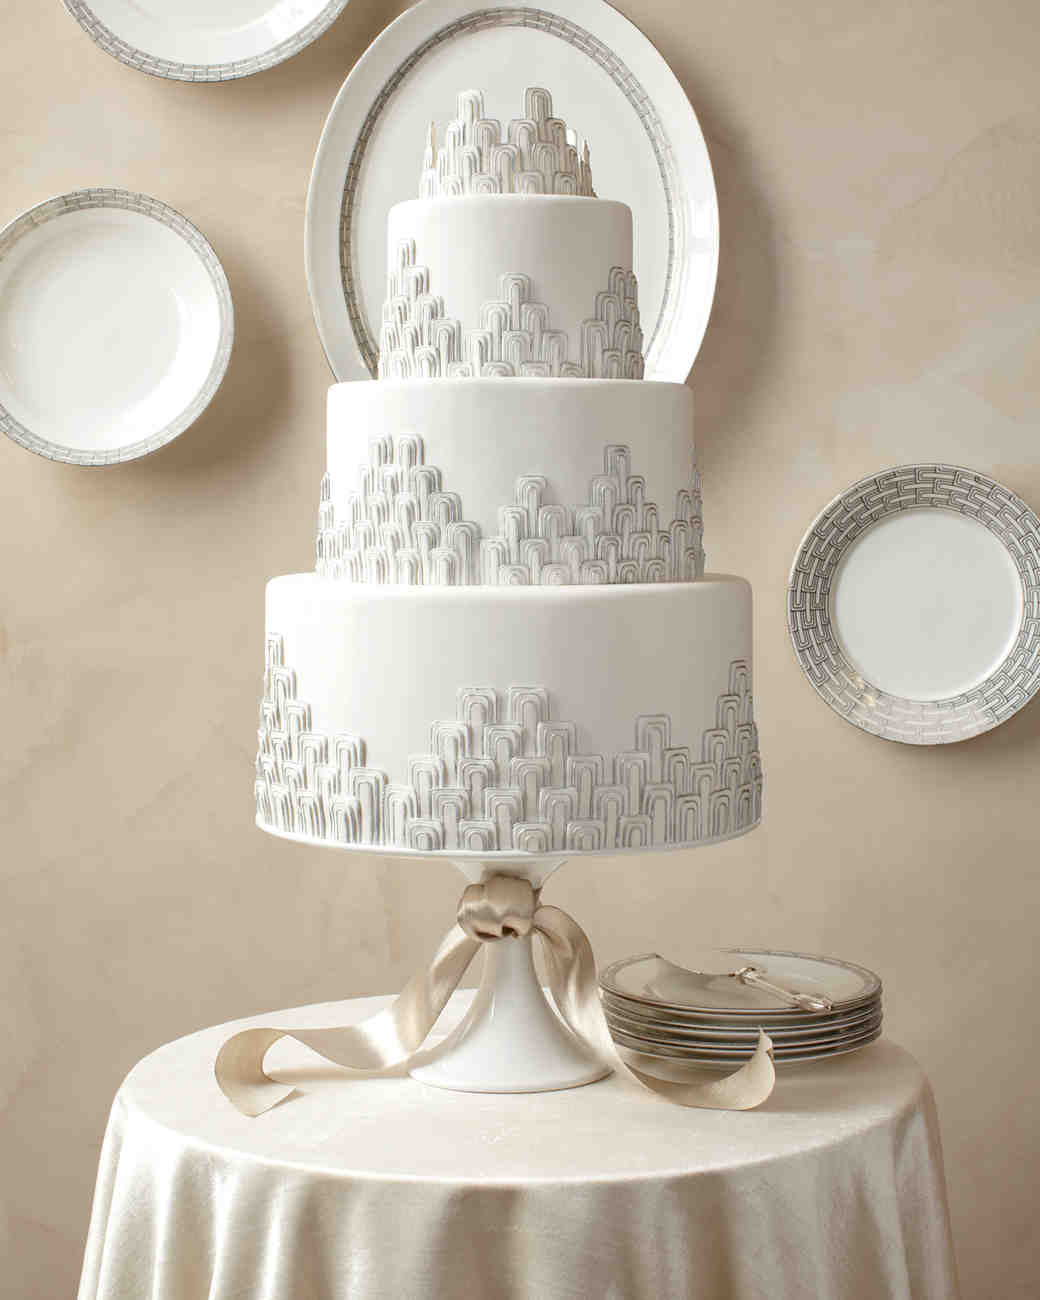 Design Patterns Of Cake : Wedding Cakes Inspired by China Patterns Martha Stewart ...